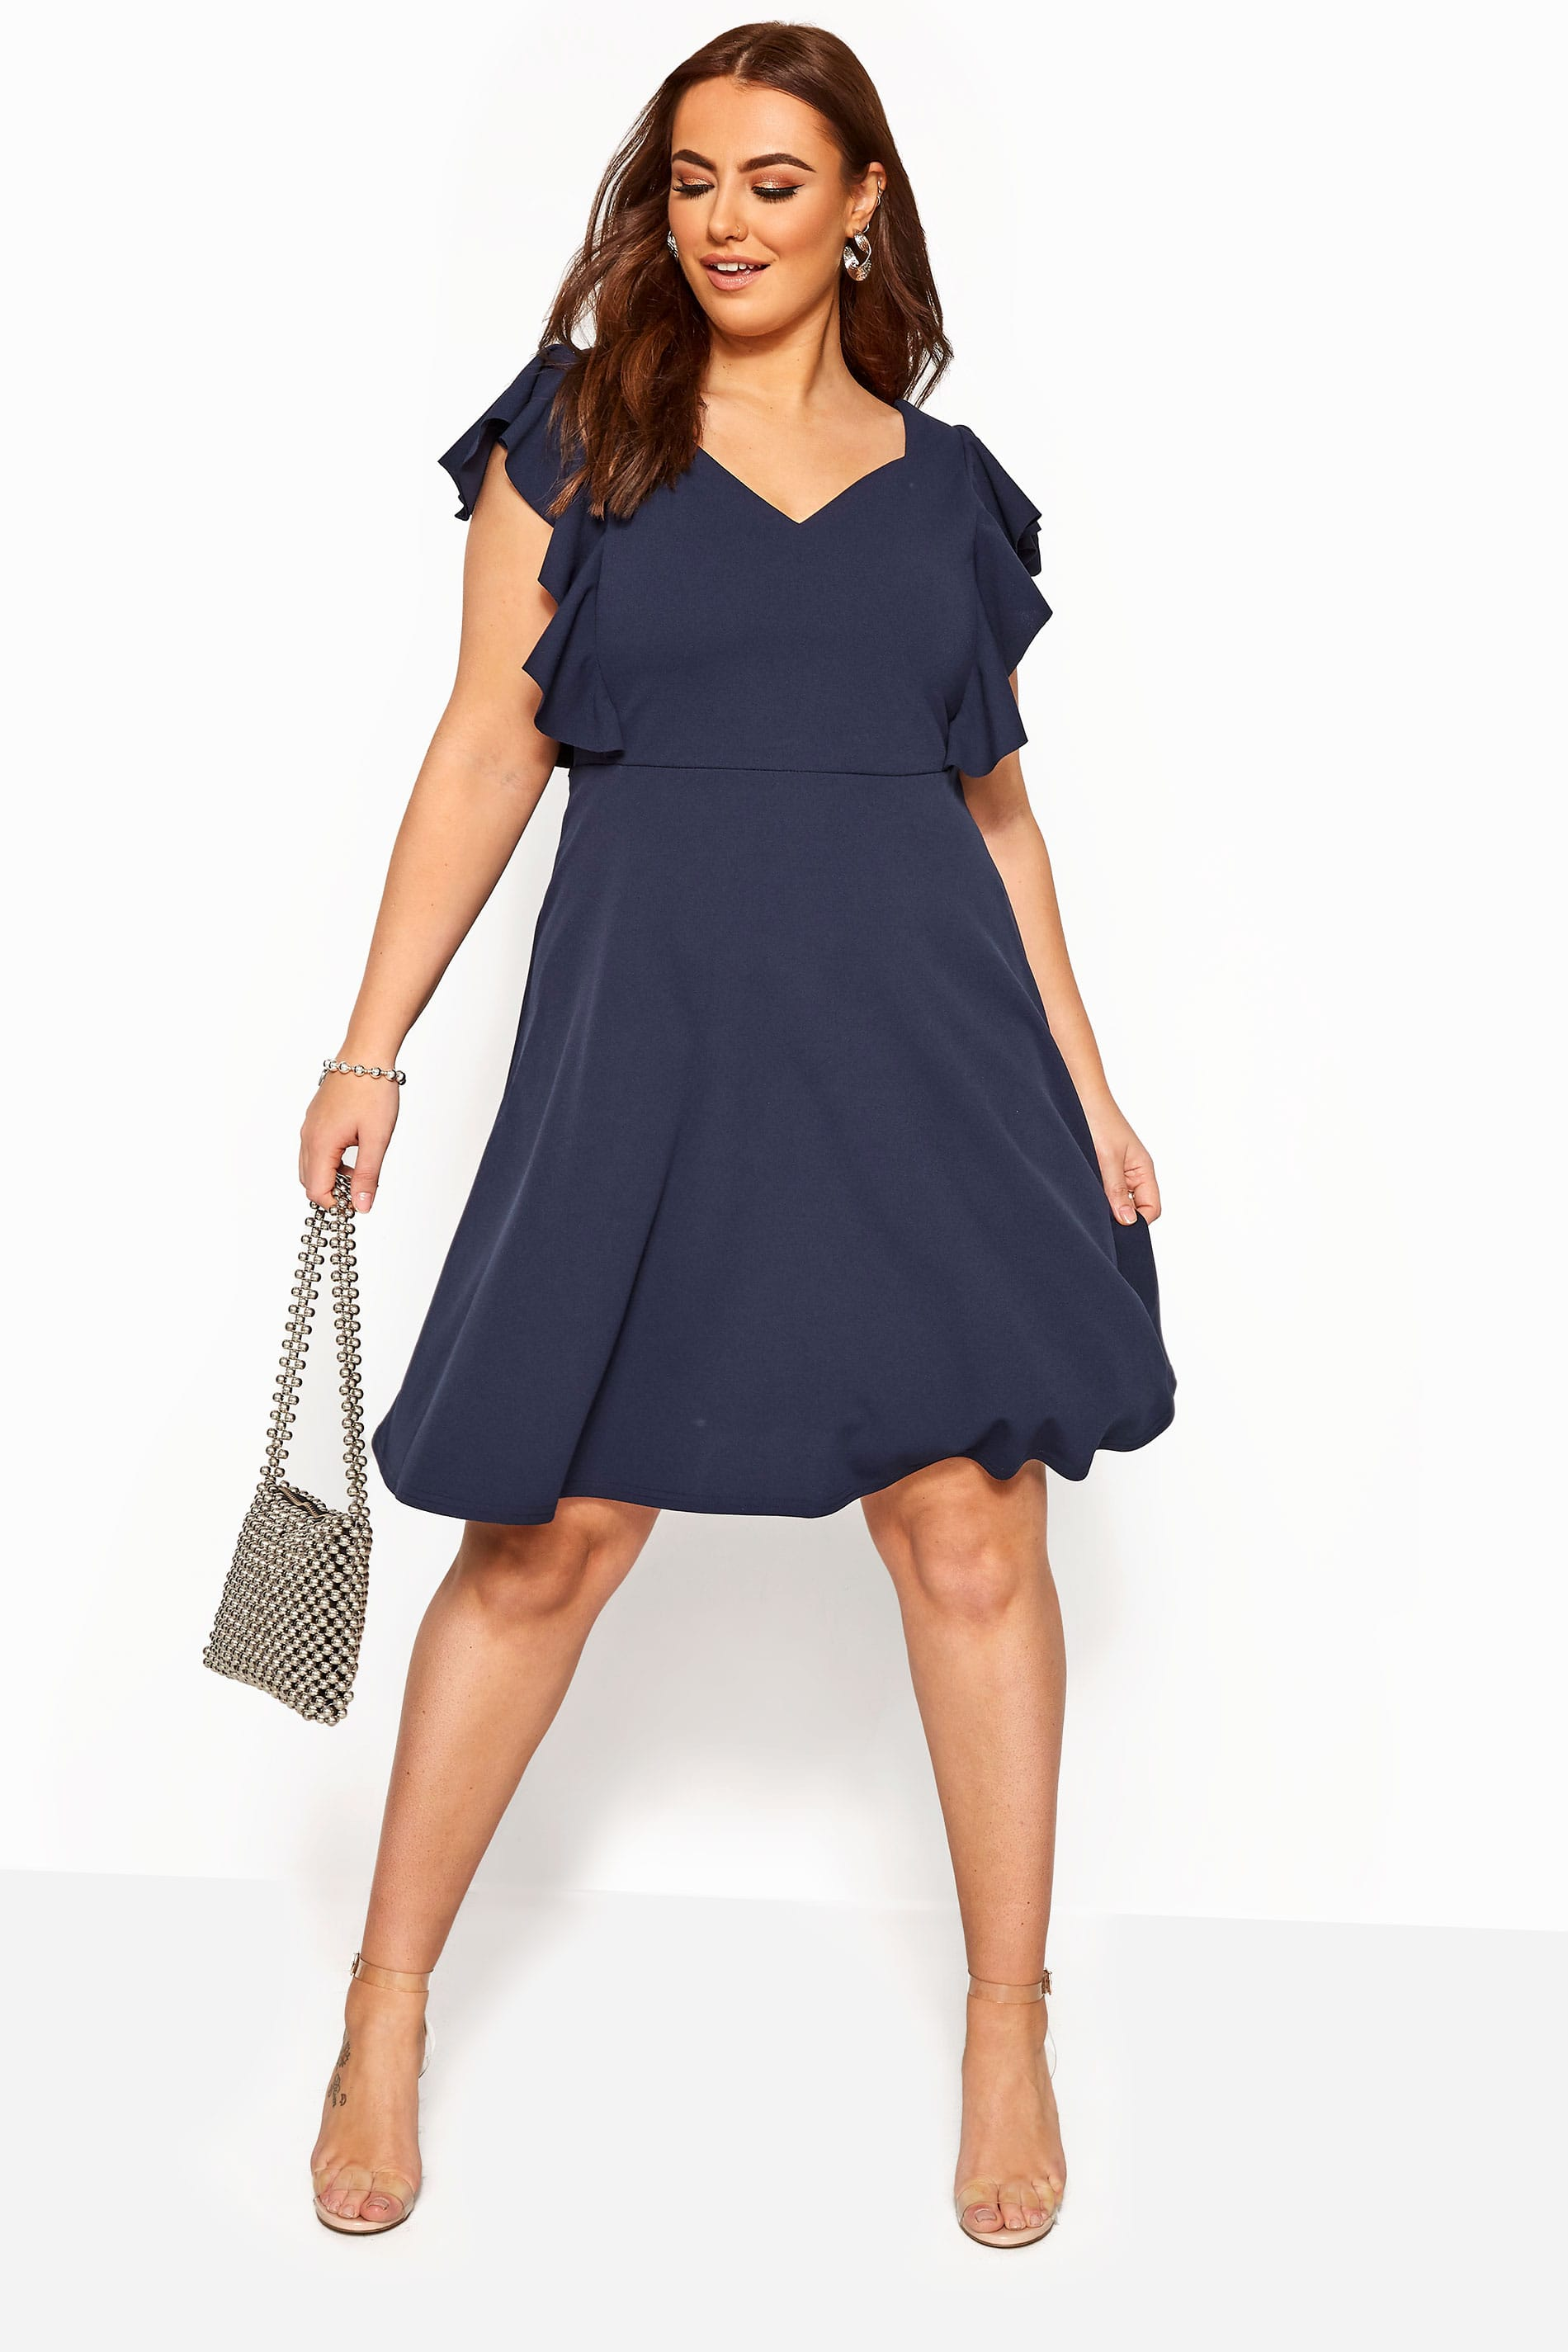 YOURS LONDON Navy Frill Shoulder Skater Dress